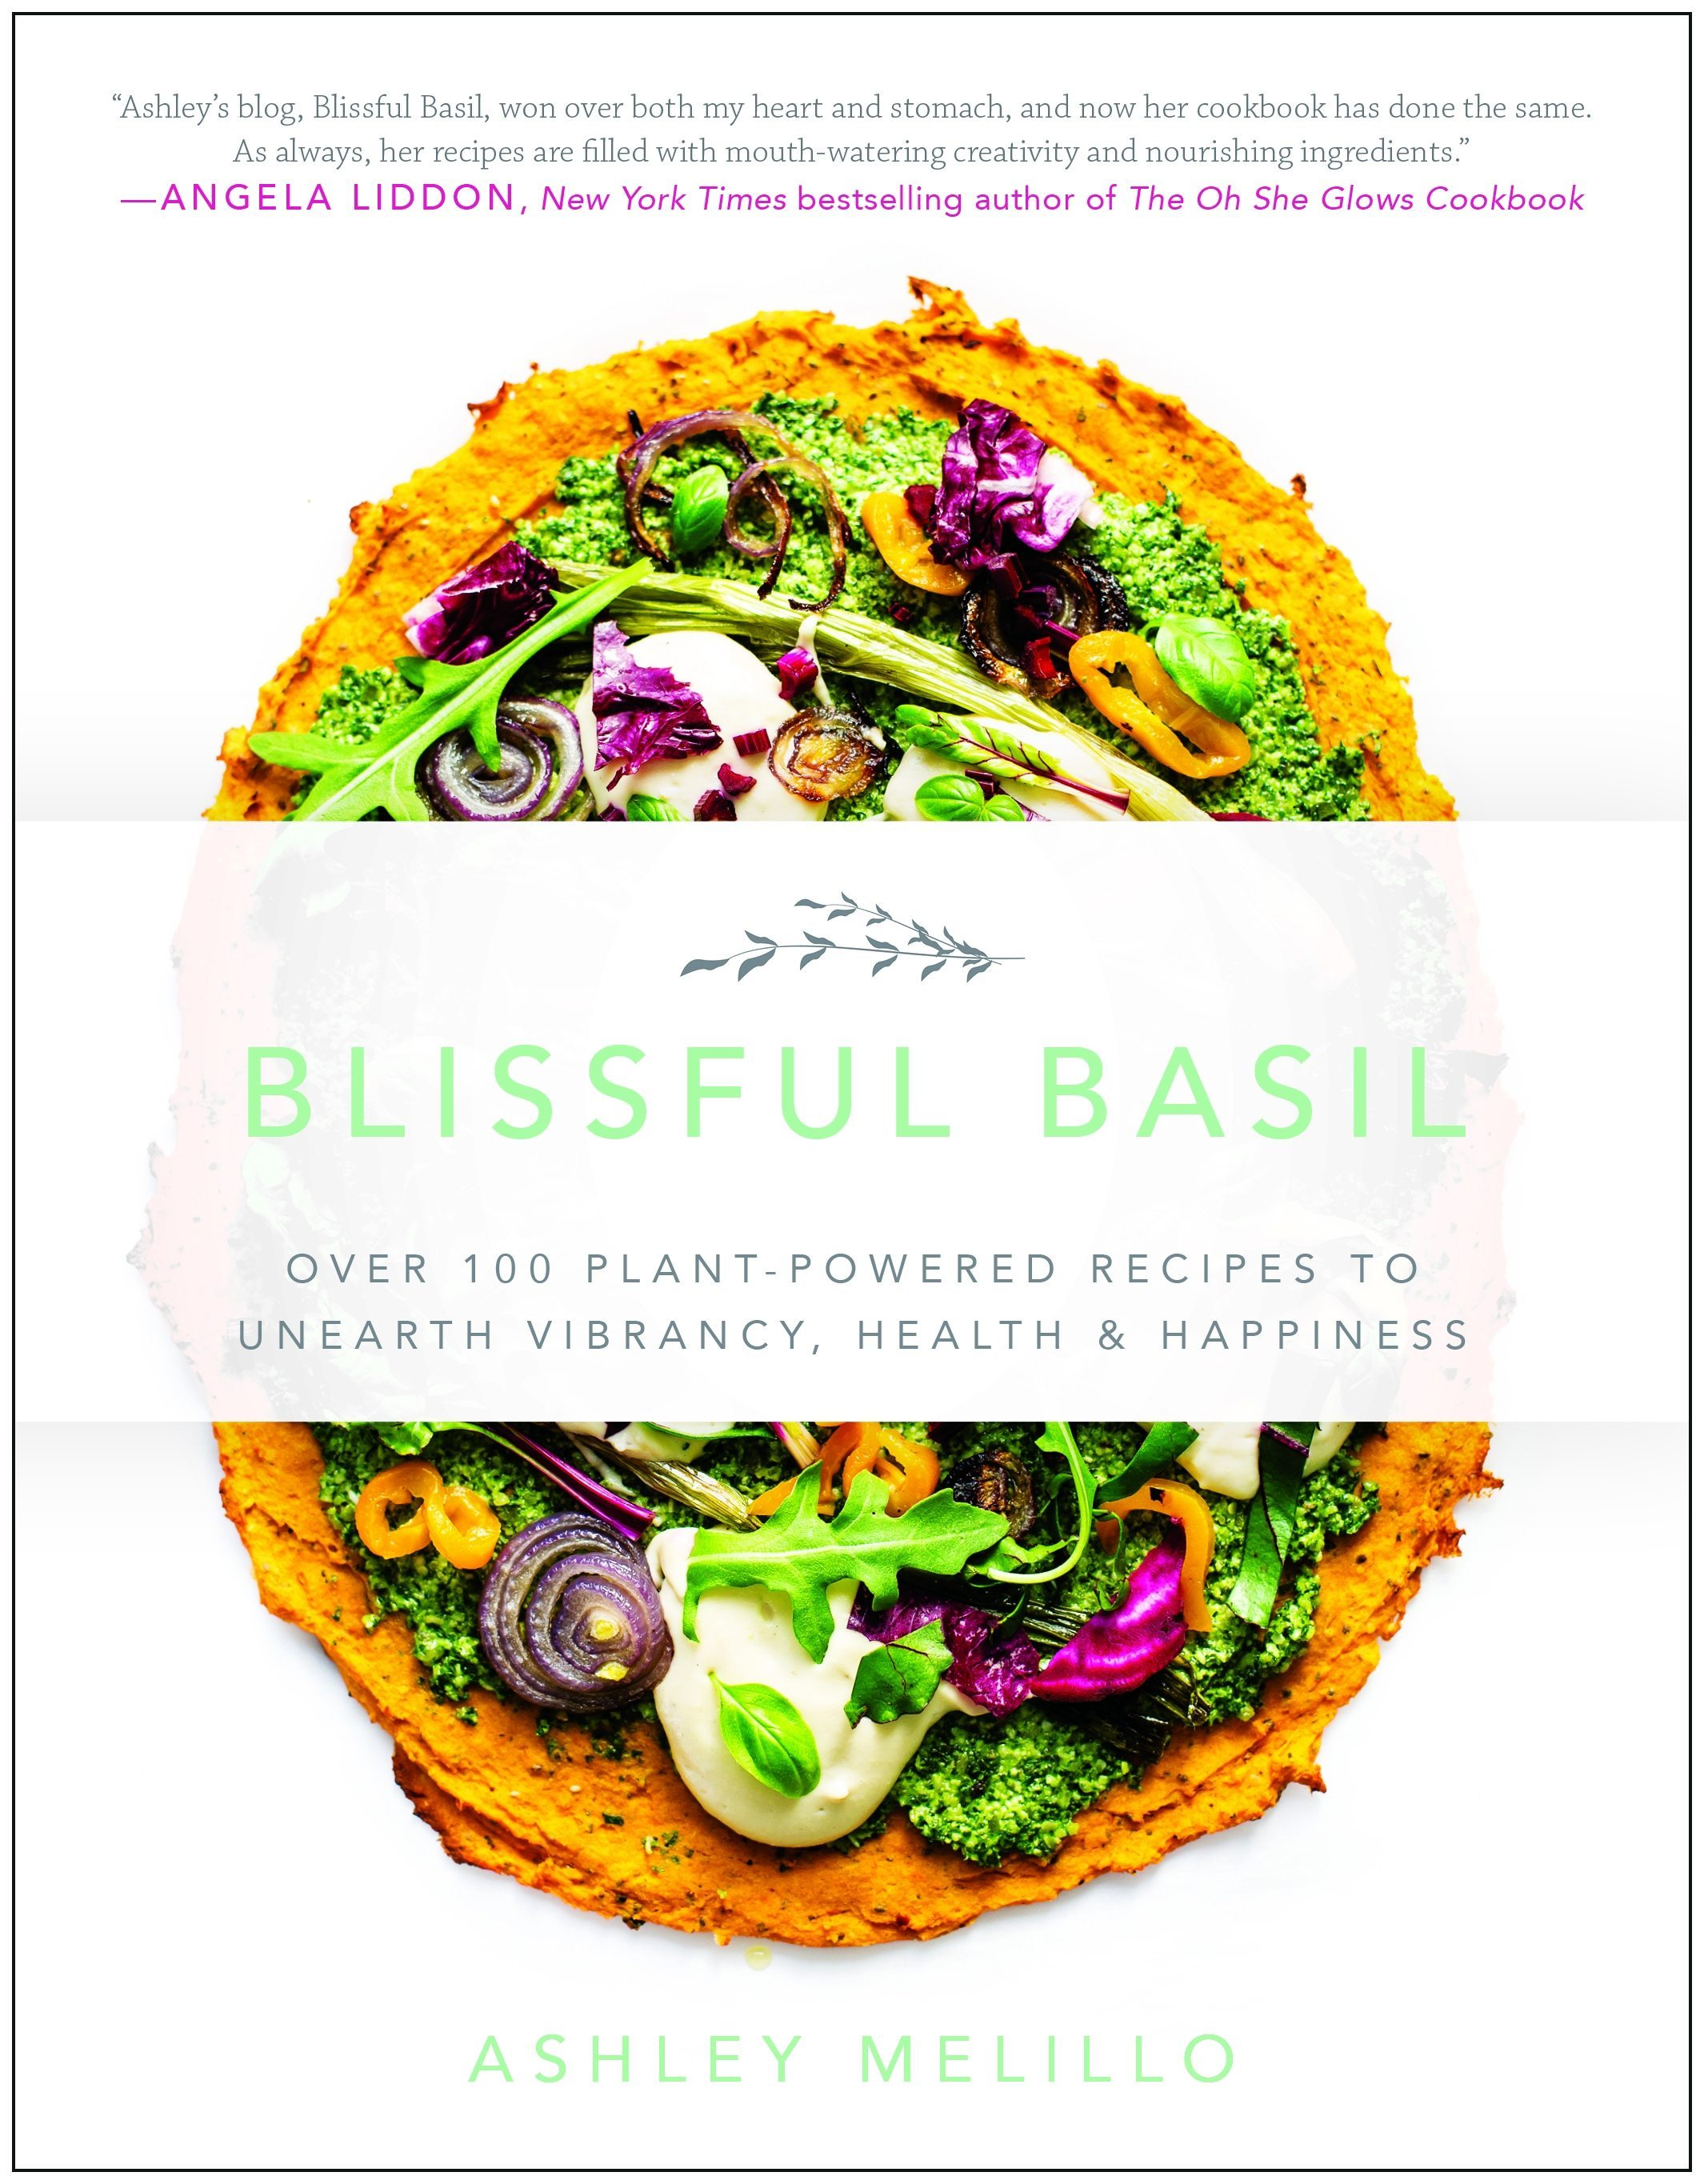 Blissful Basil: Over 100 Plant-Powered Recipes to Unearth Vibrancy, Health, & Happiness